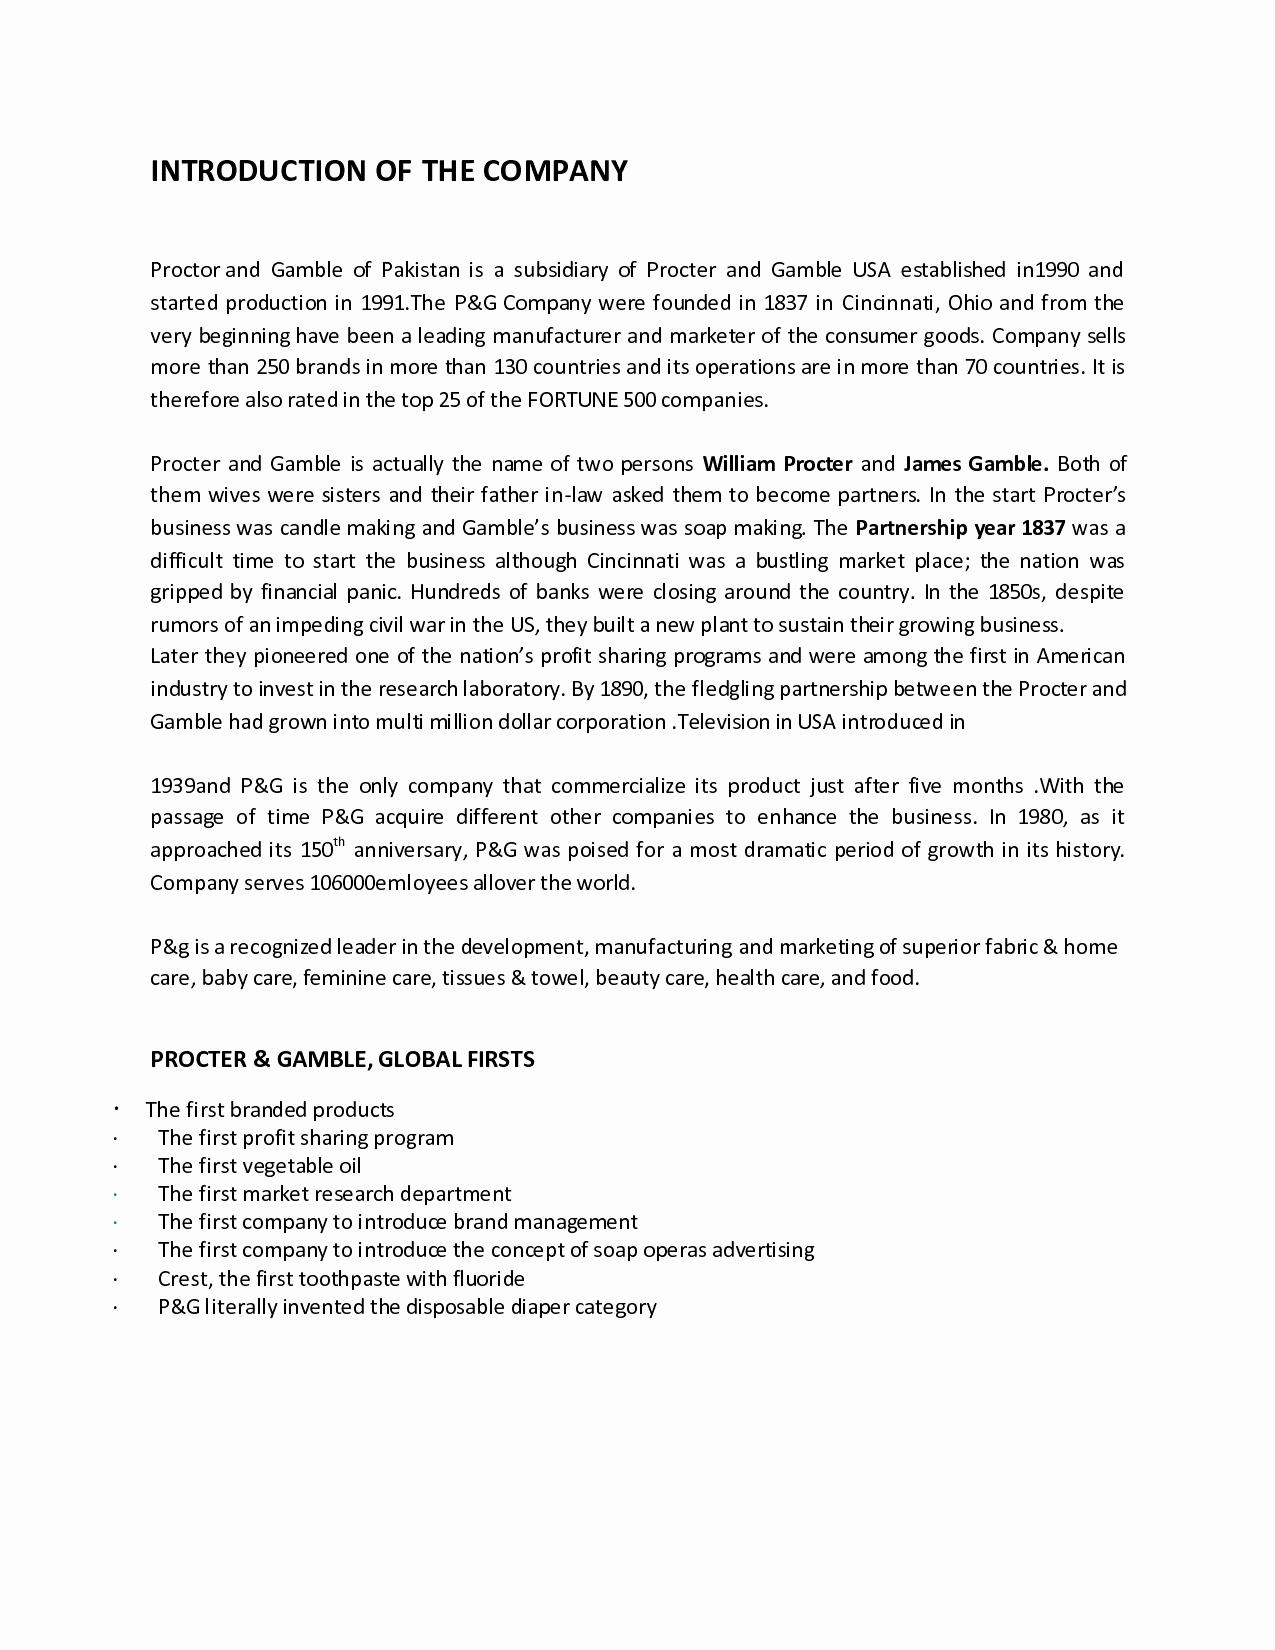 Amazing Cover Letter Template - Excellent Cover Letter Examples Luxury New Sample Cover Letter